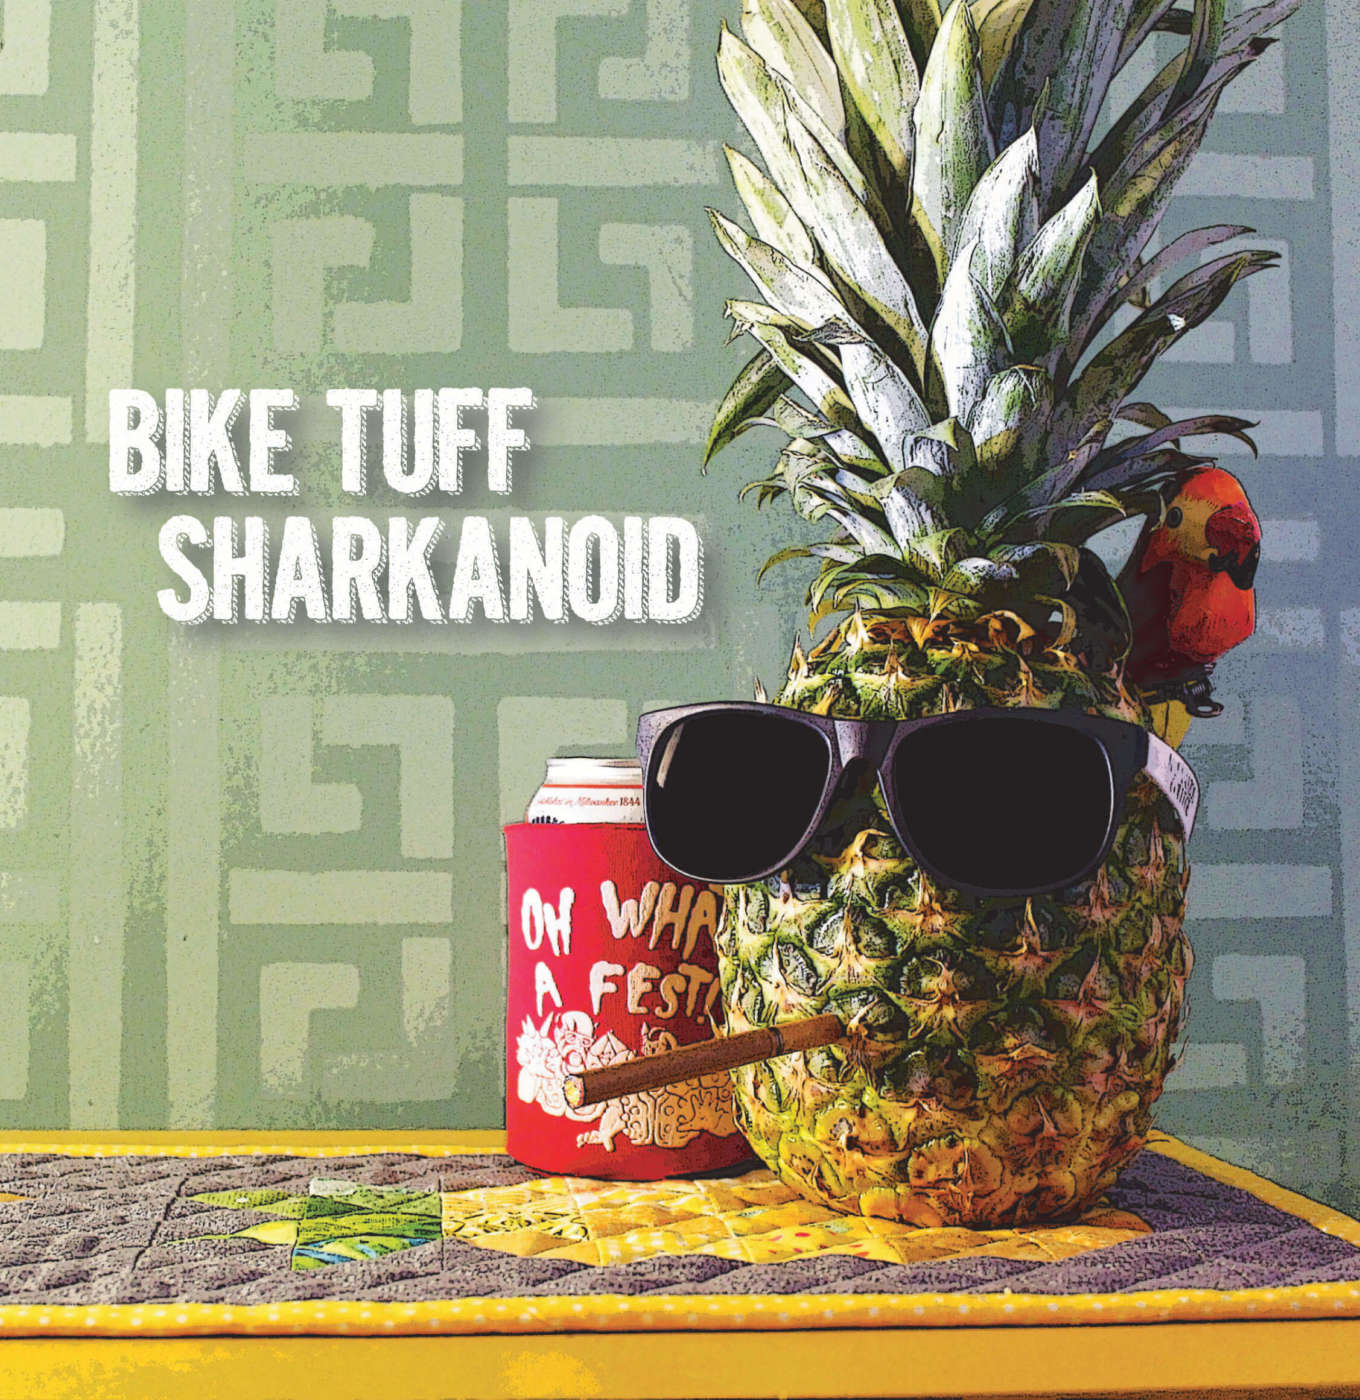 Bike Tuff / Sharkanoid